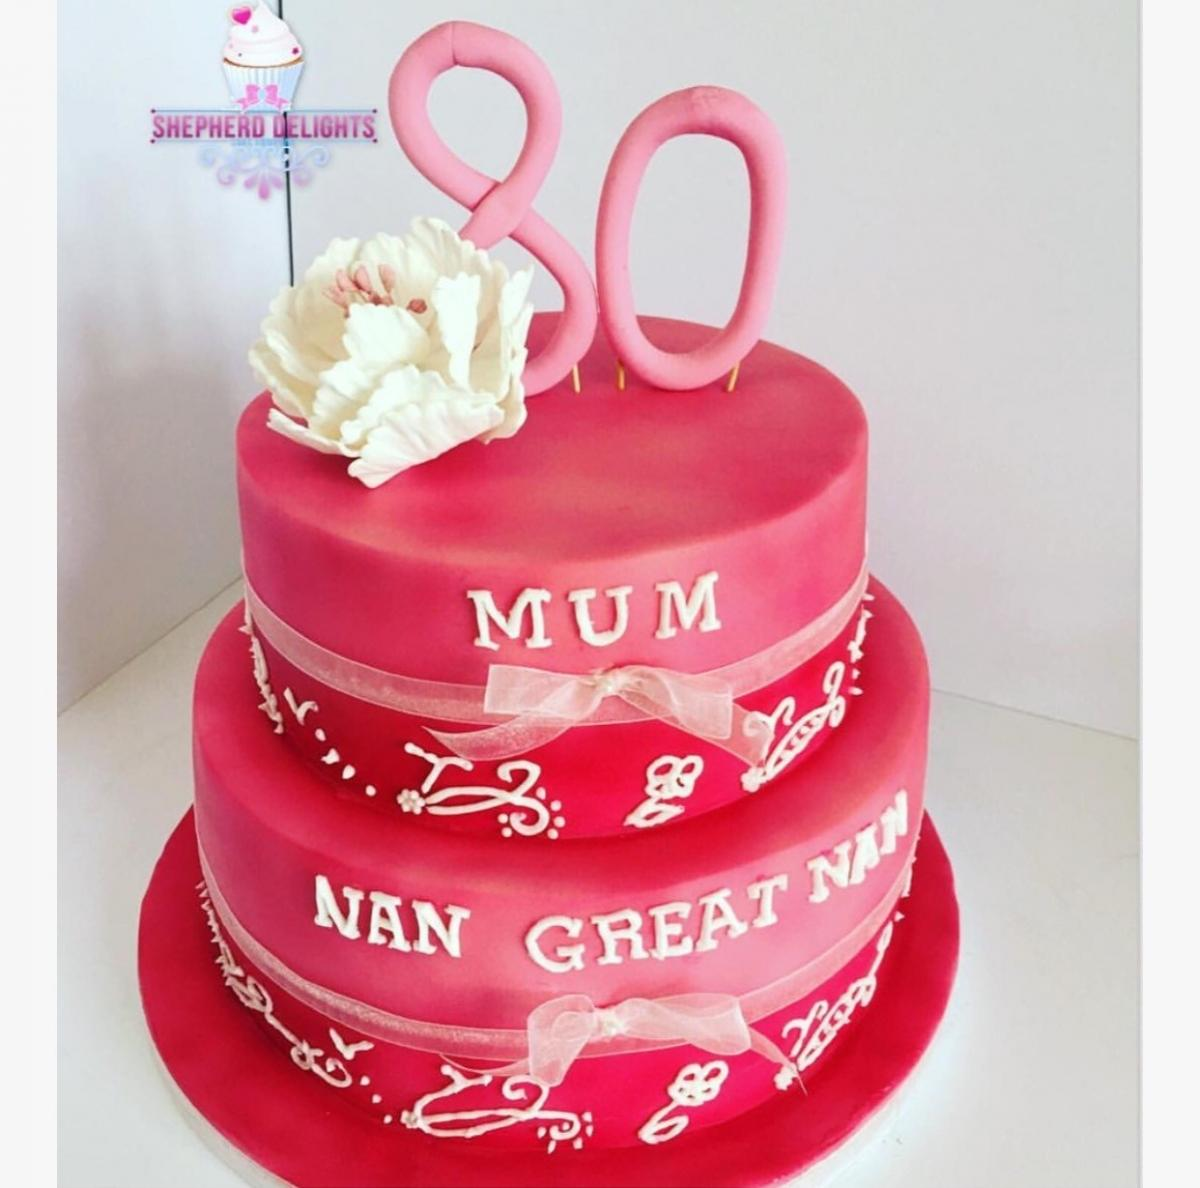 Cool Pink Two Tier Birthday Cake Teenage Adult Birthday Cakes Funny Birthday Cards Online Inifodamsfinfo